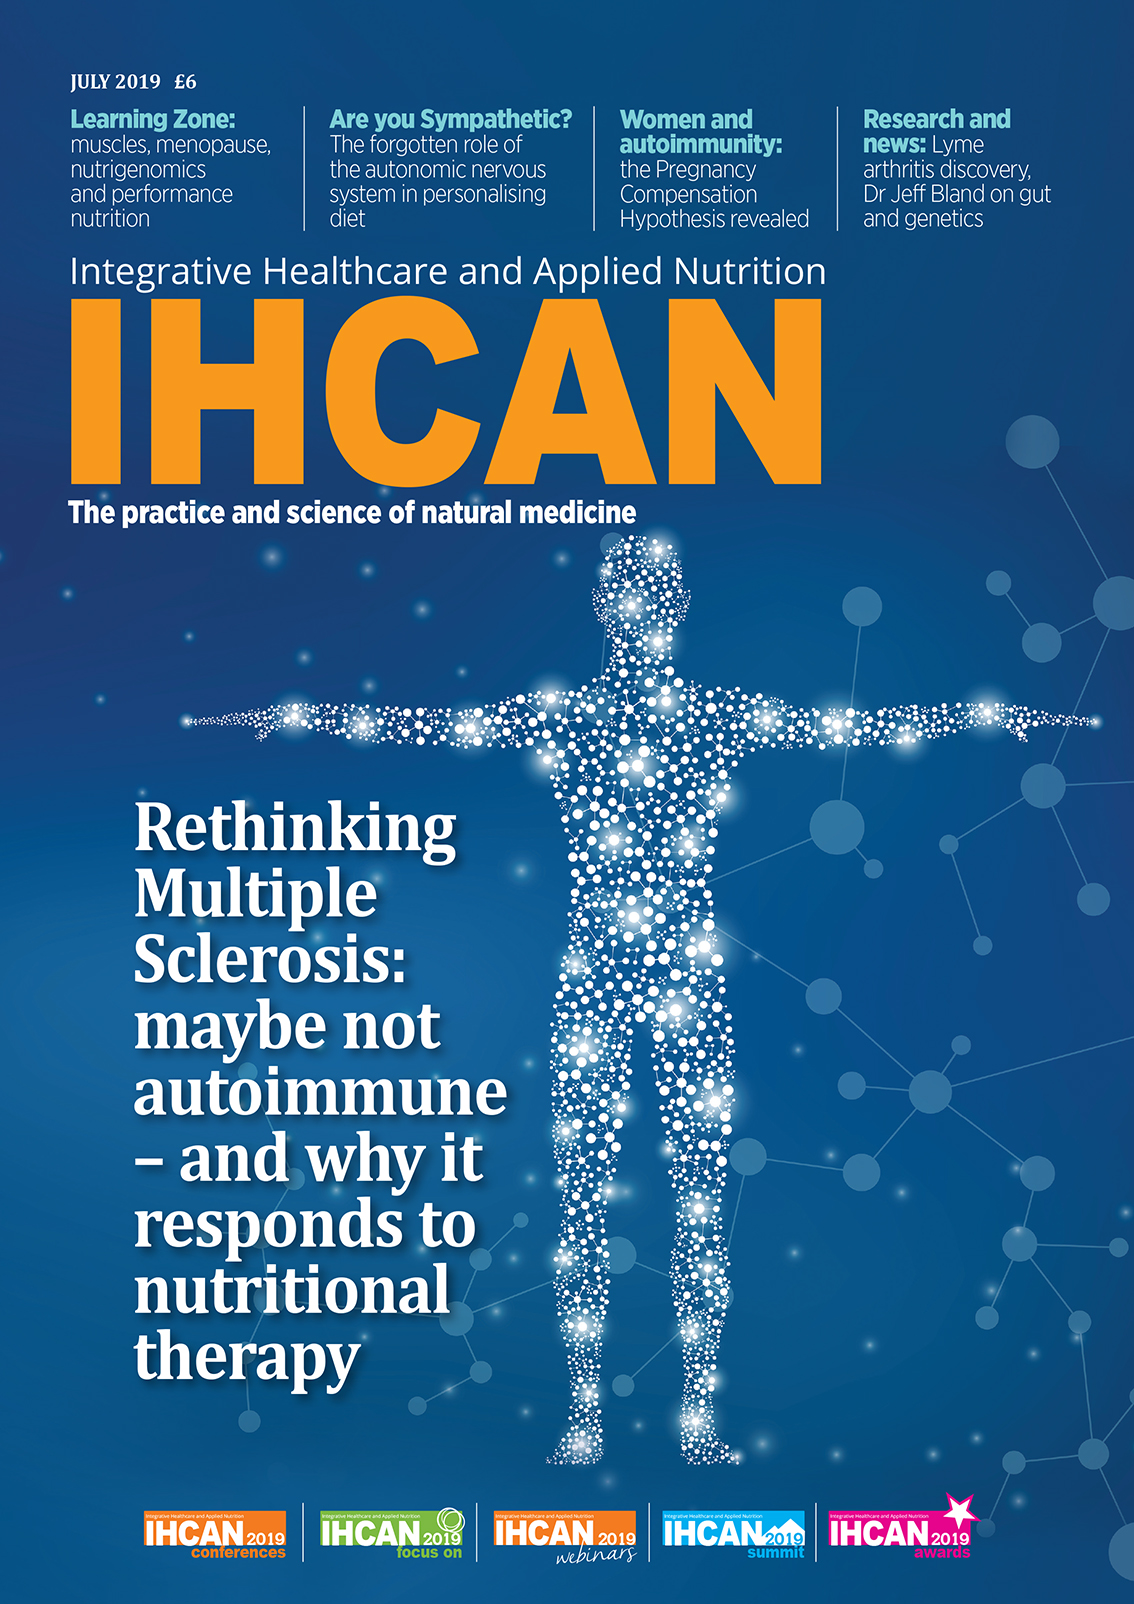 IHCAN March 2017